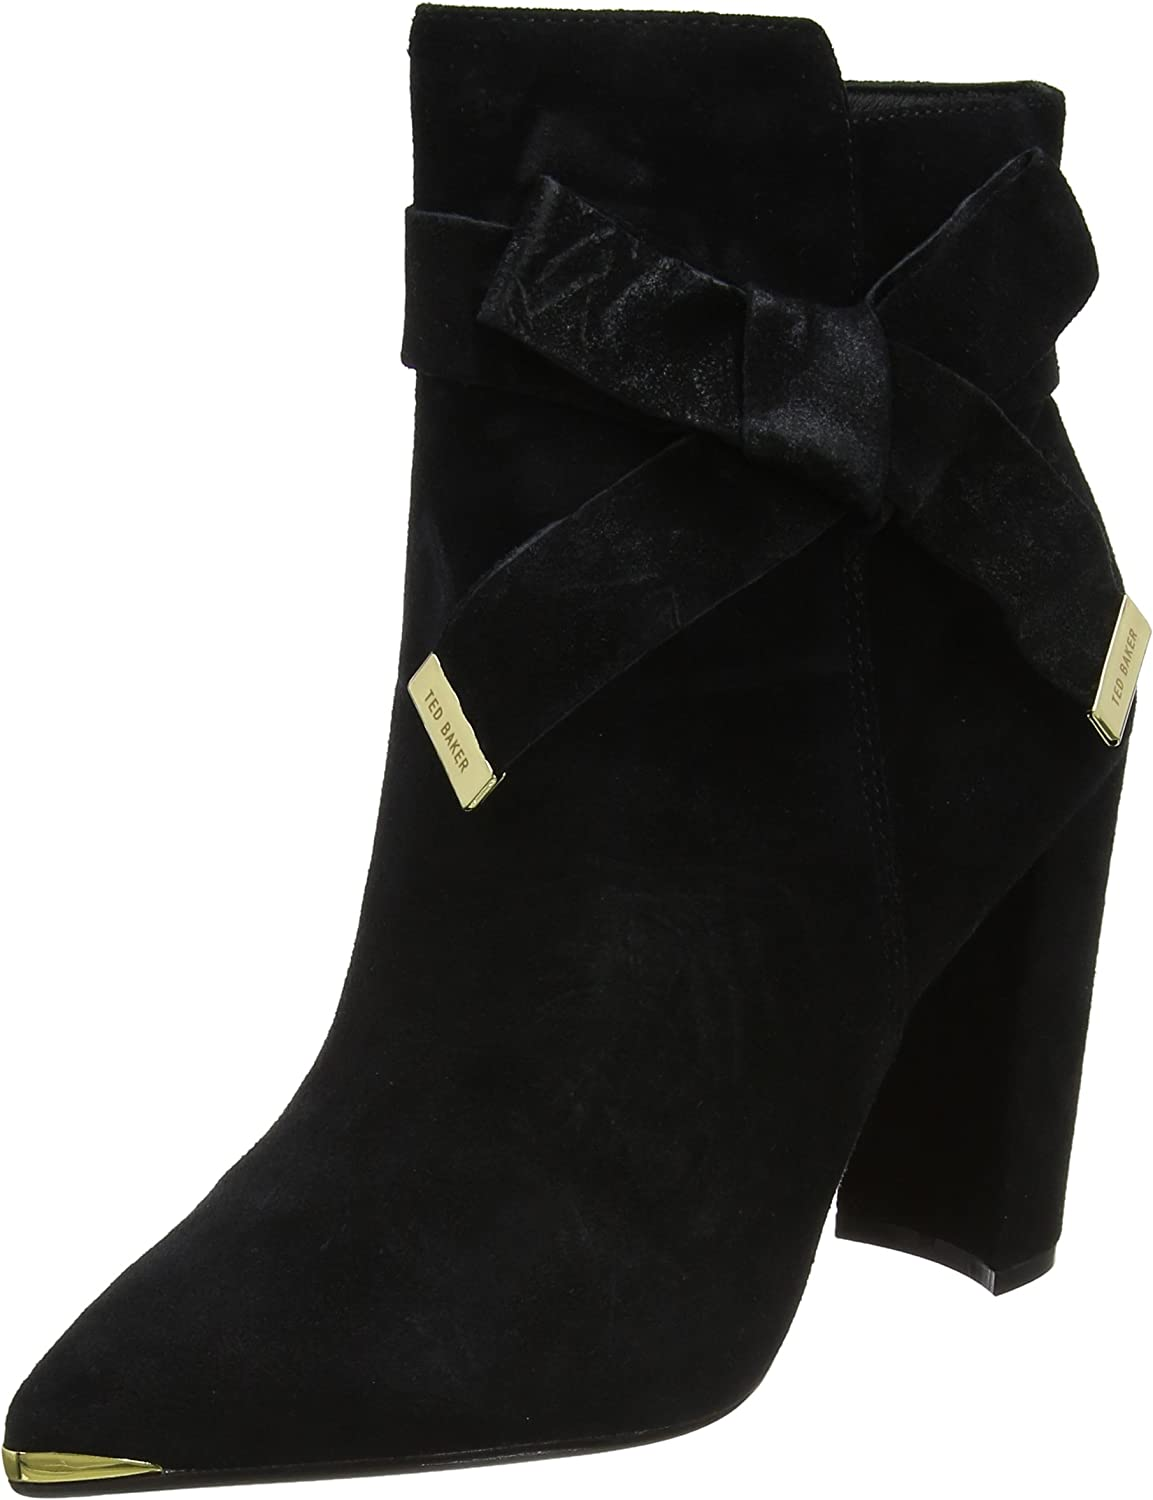 Ted Baker Women's Sailly Suede Zip Up Ankle Boot Black